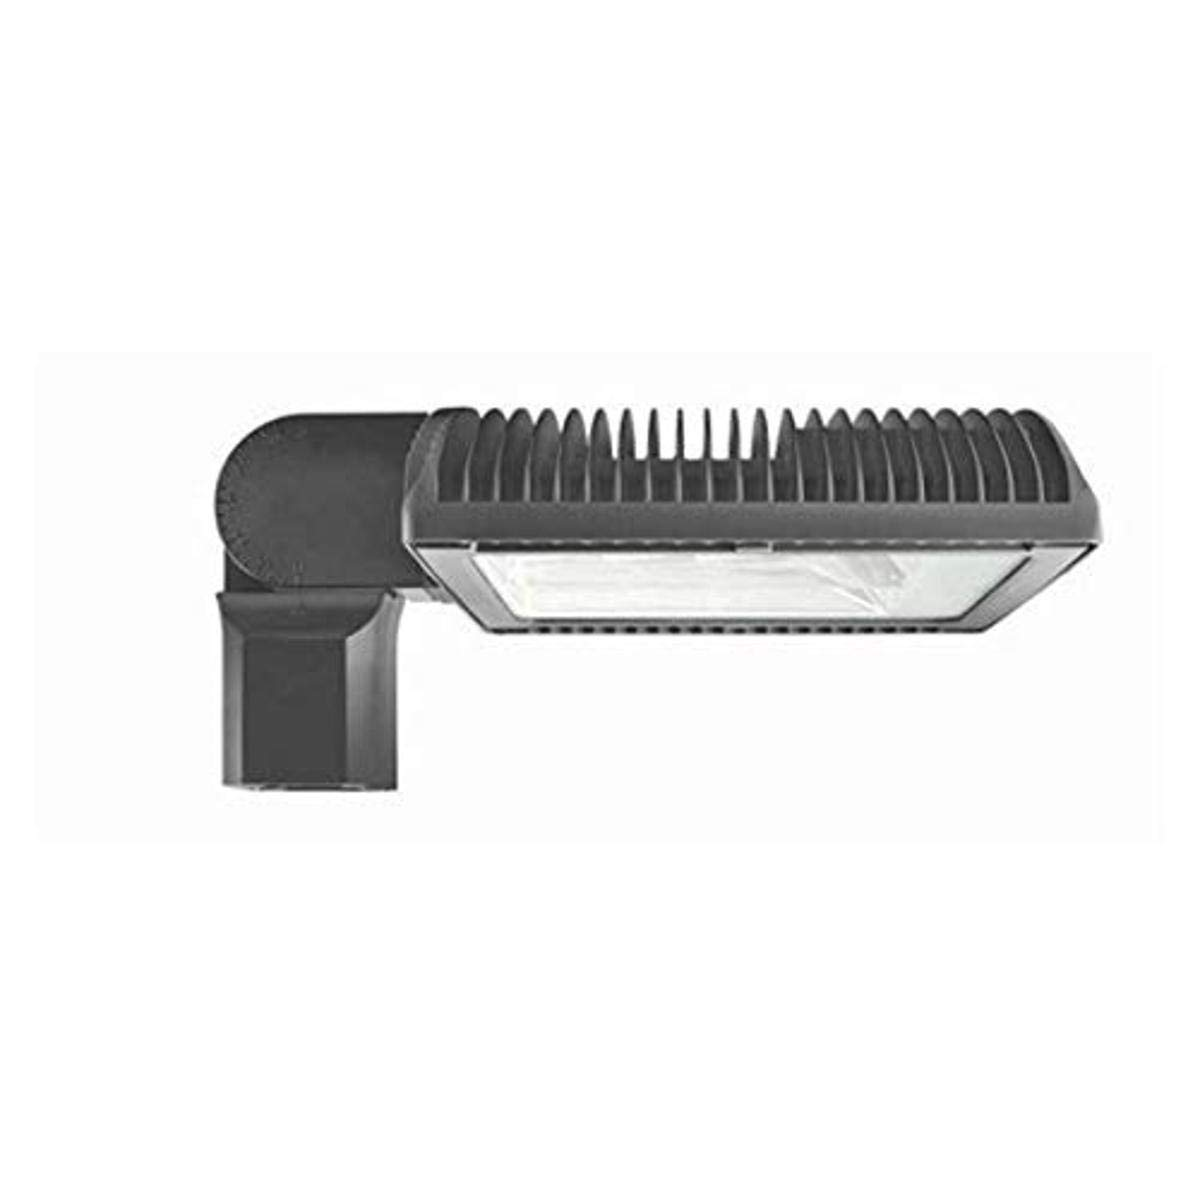 RAB Lighting ALED2T125SF/BL LED High Wattage Type II Area Light, Bi-Level Type, 5000 K (Cool) Color Temperature, Bronze Finish